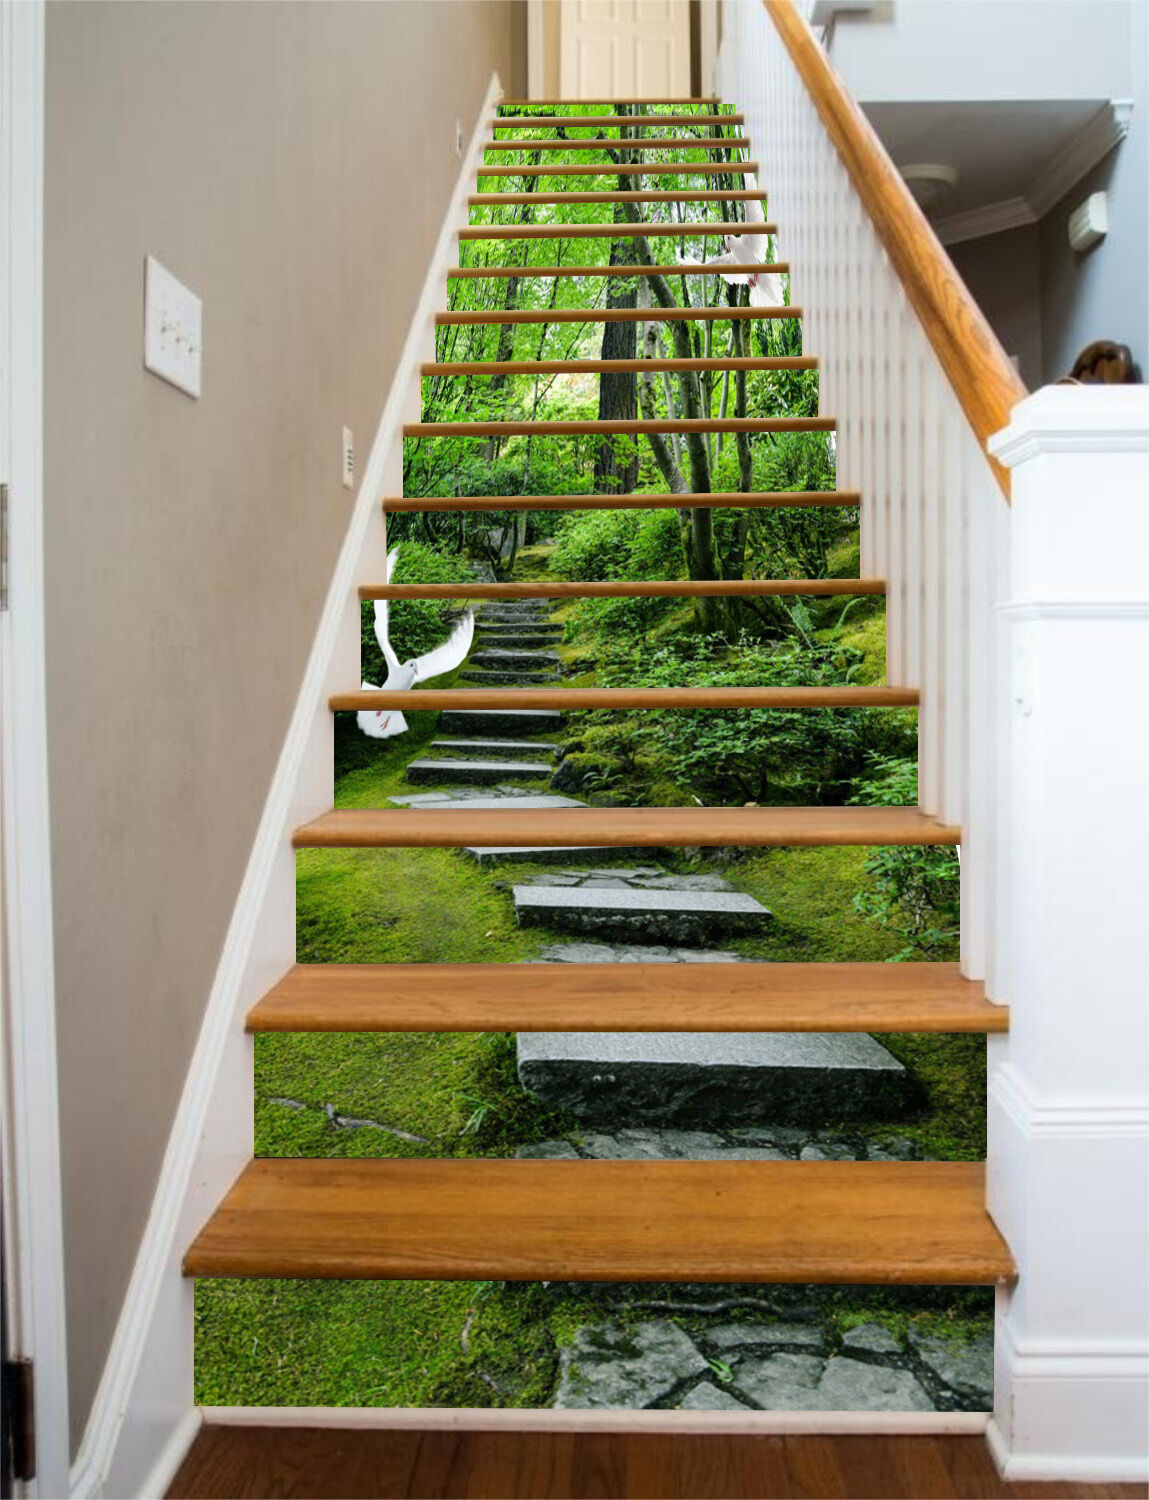 3D Forest road 369 Stair Risers Decoration Photo Mural Vinyl Decal Wallpaper UK